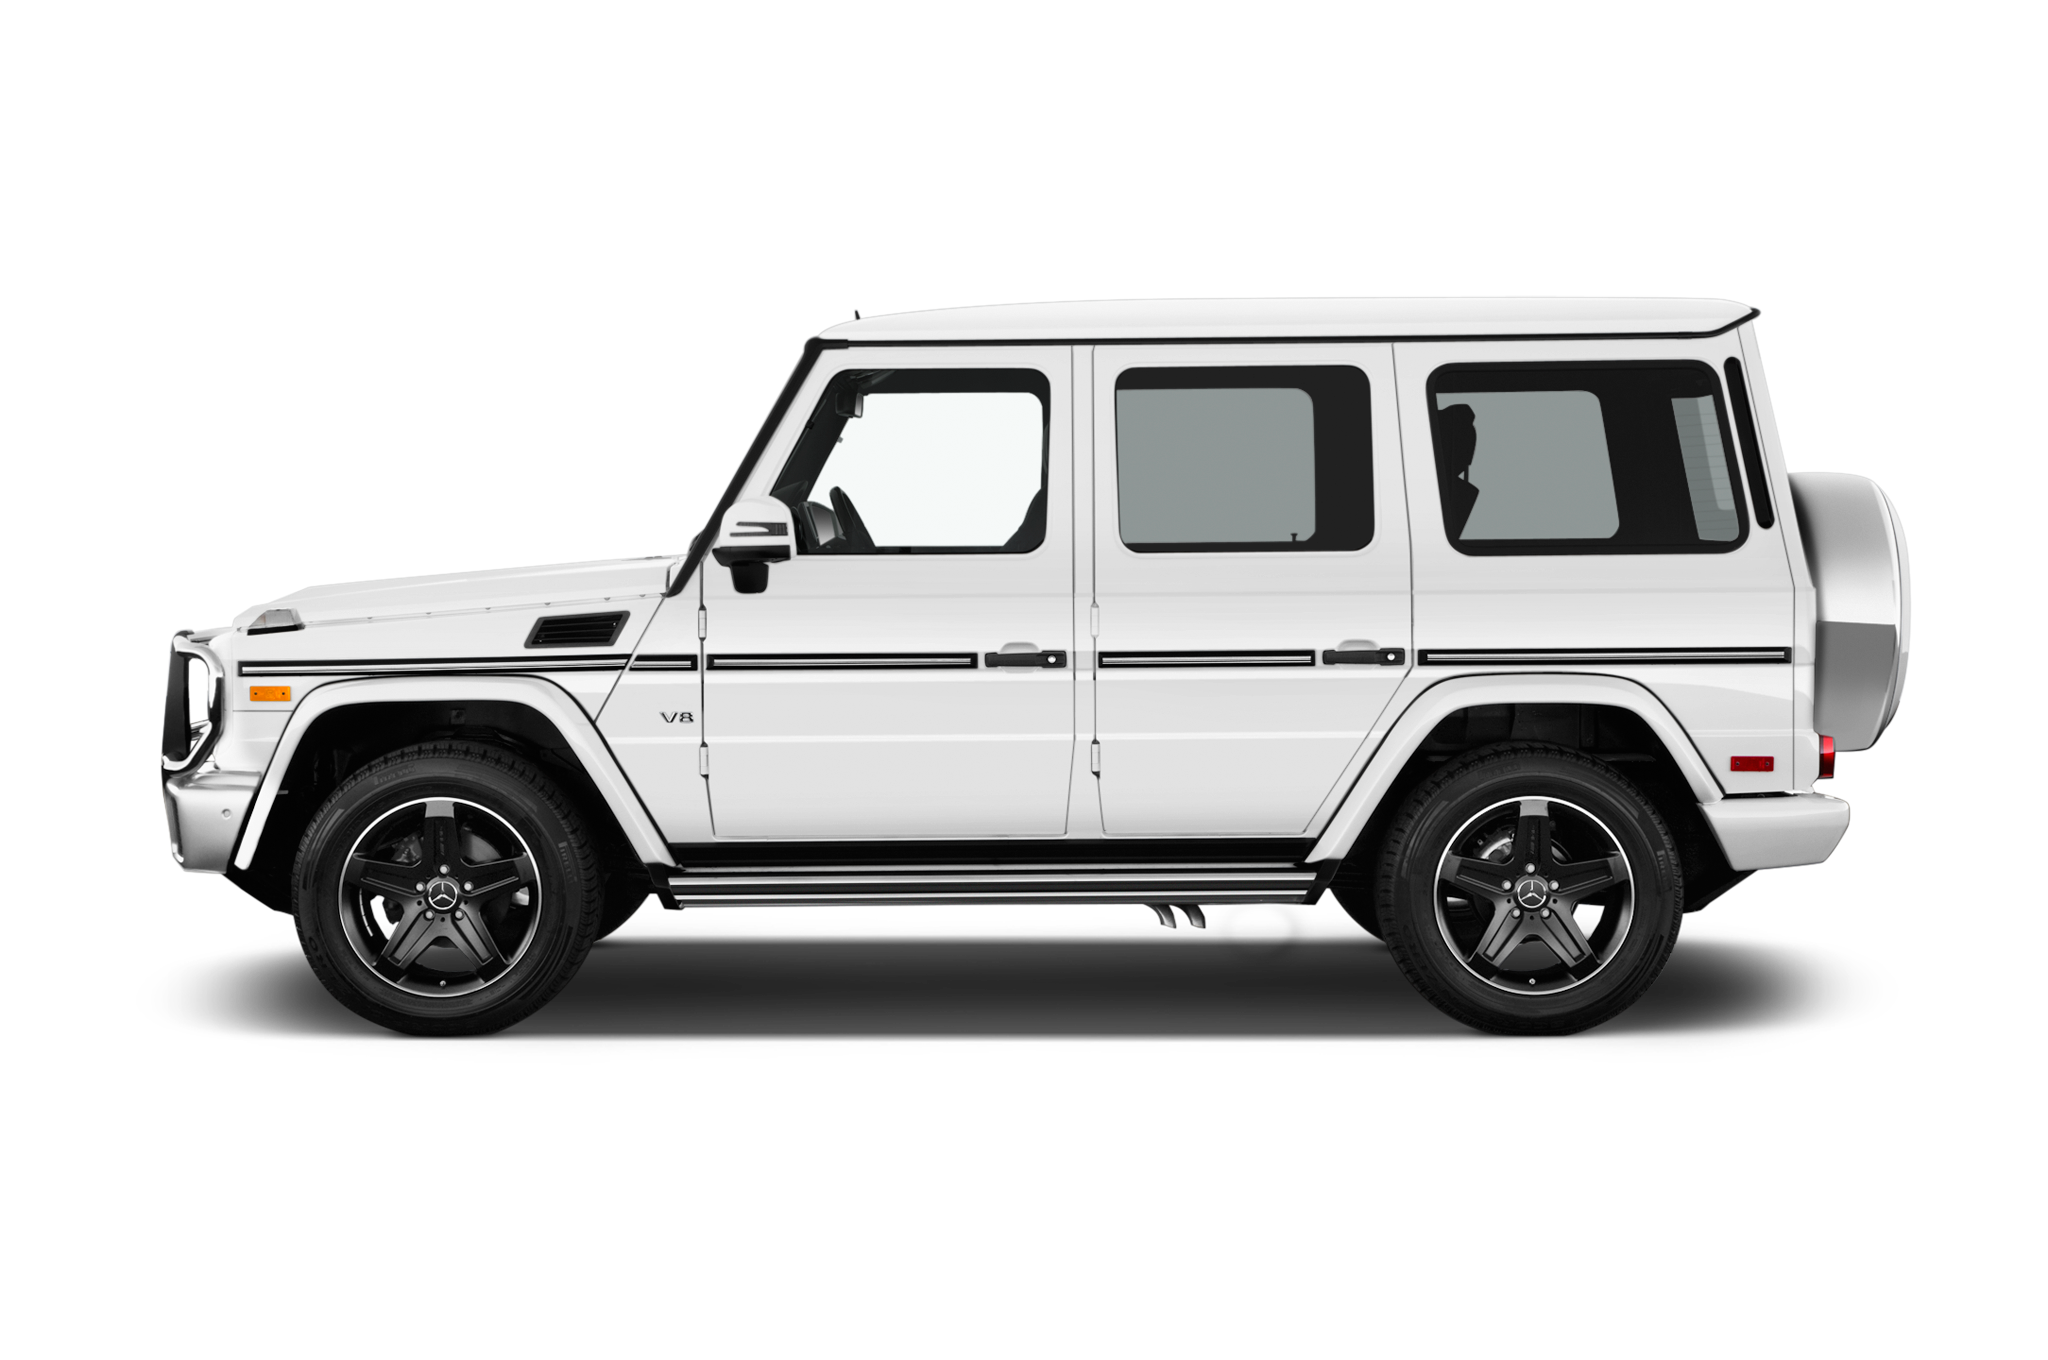 Mercedes Benz G500 4x4 Squared May Be Sold In U S Market